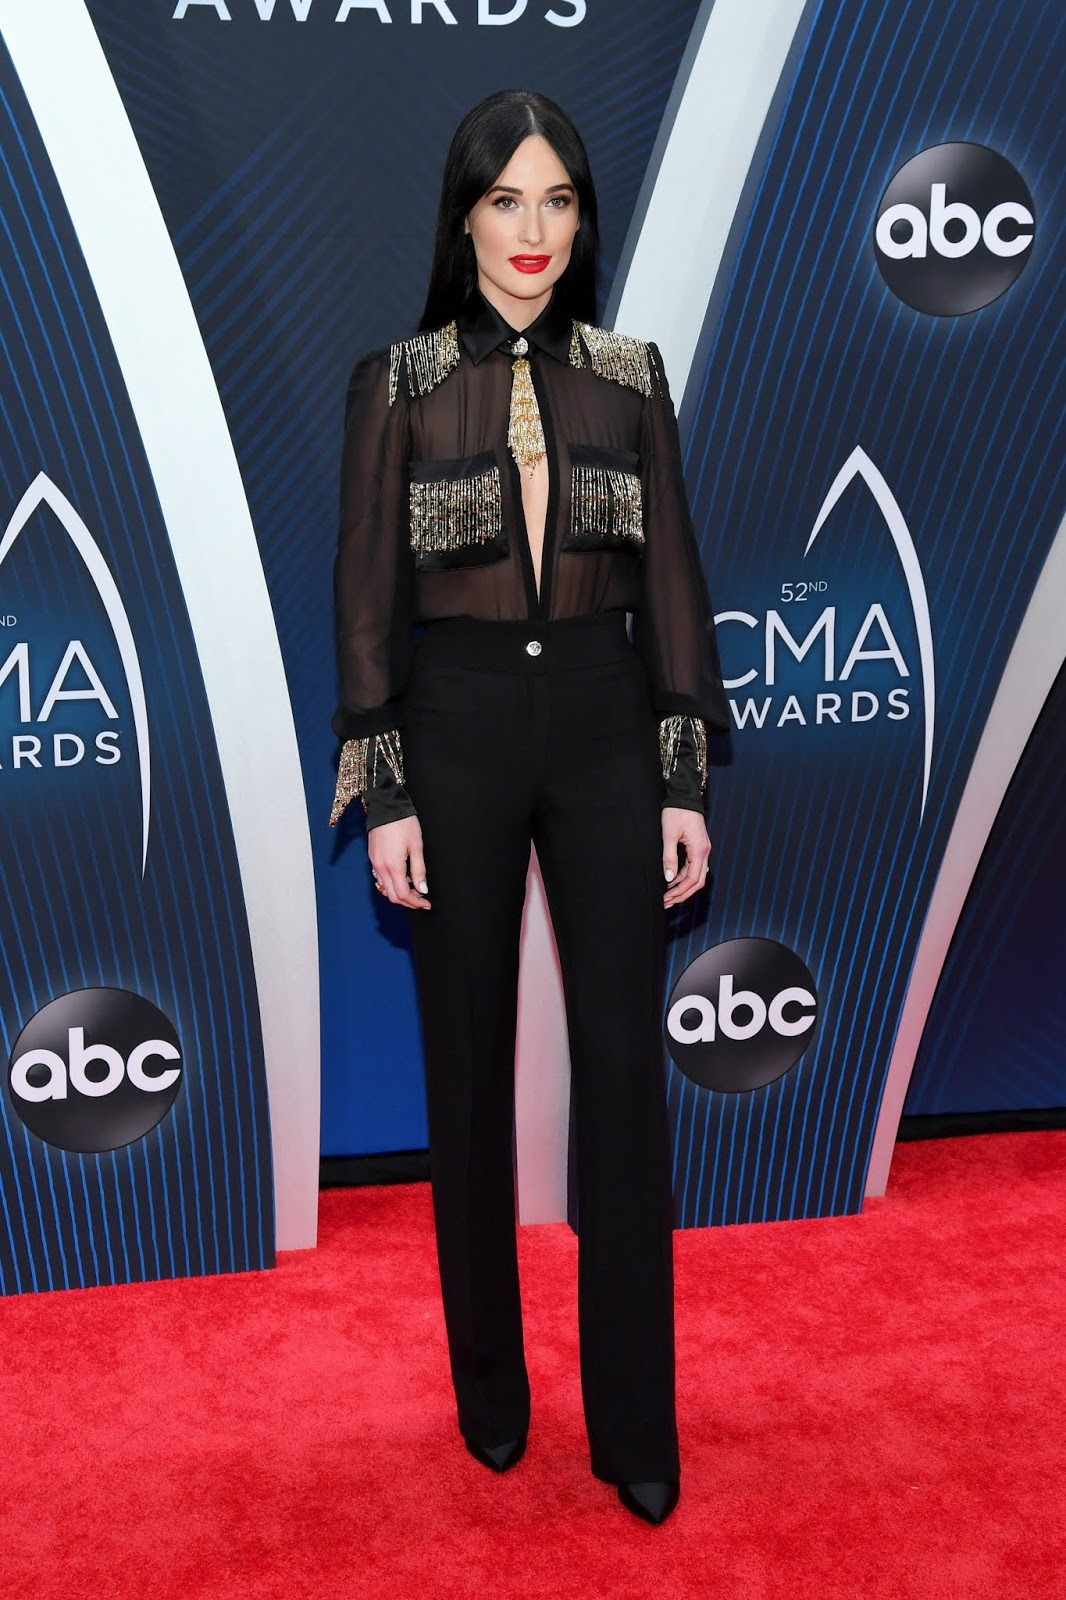 Kacey Musgraves wins album of the year at the 2018 CMAs